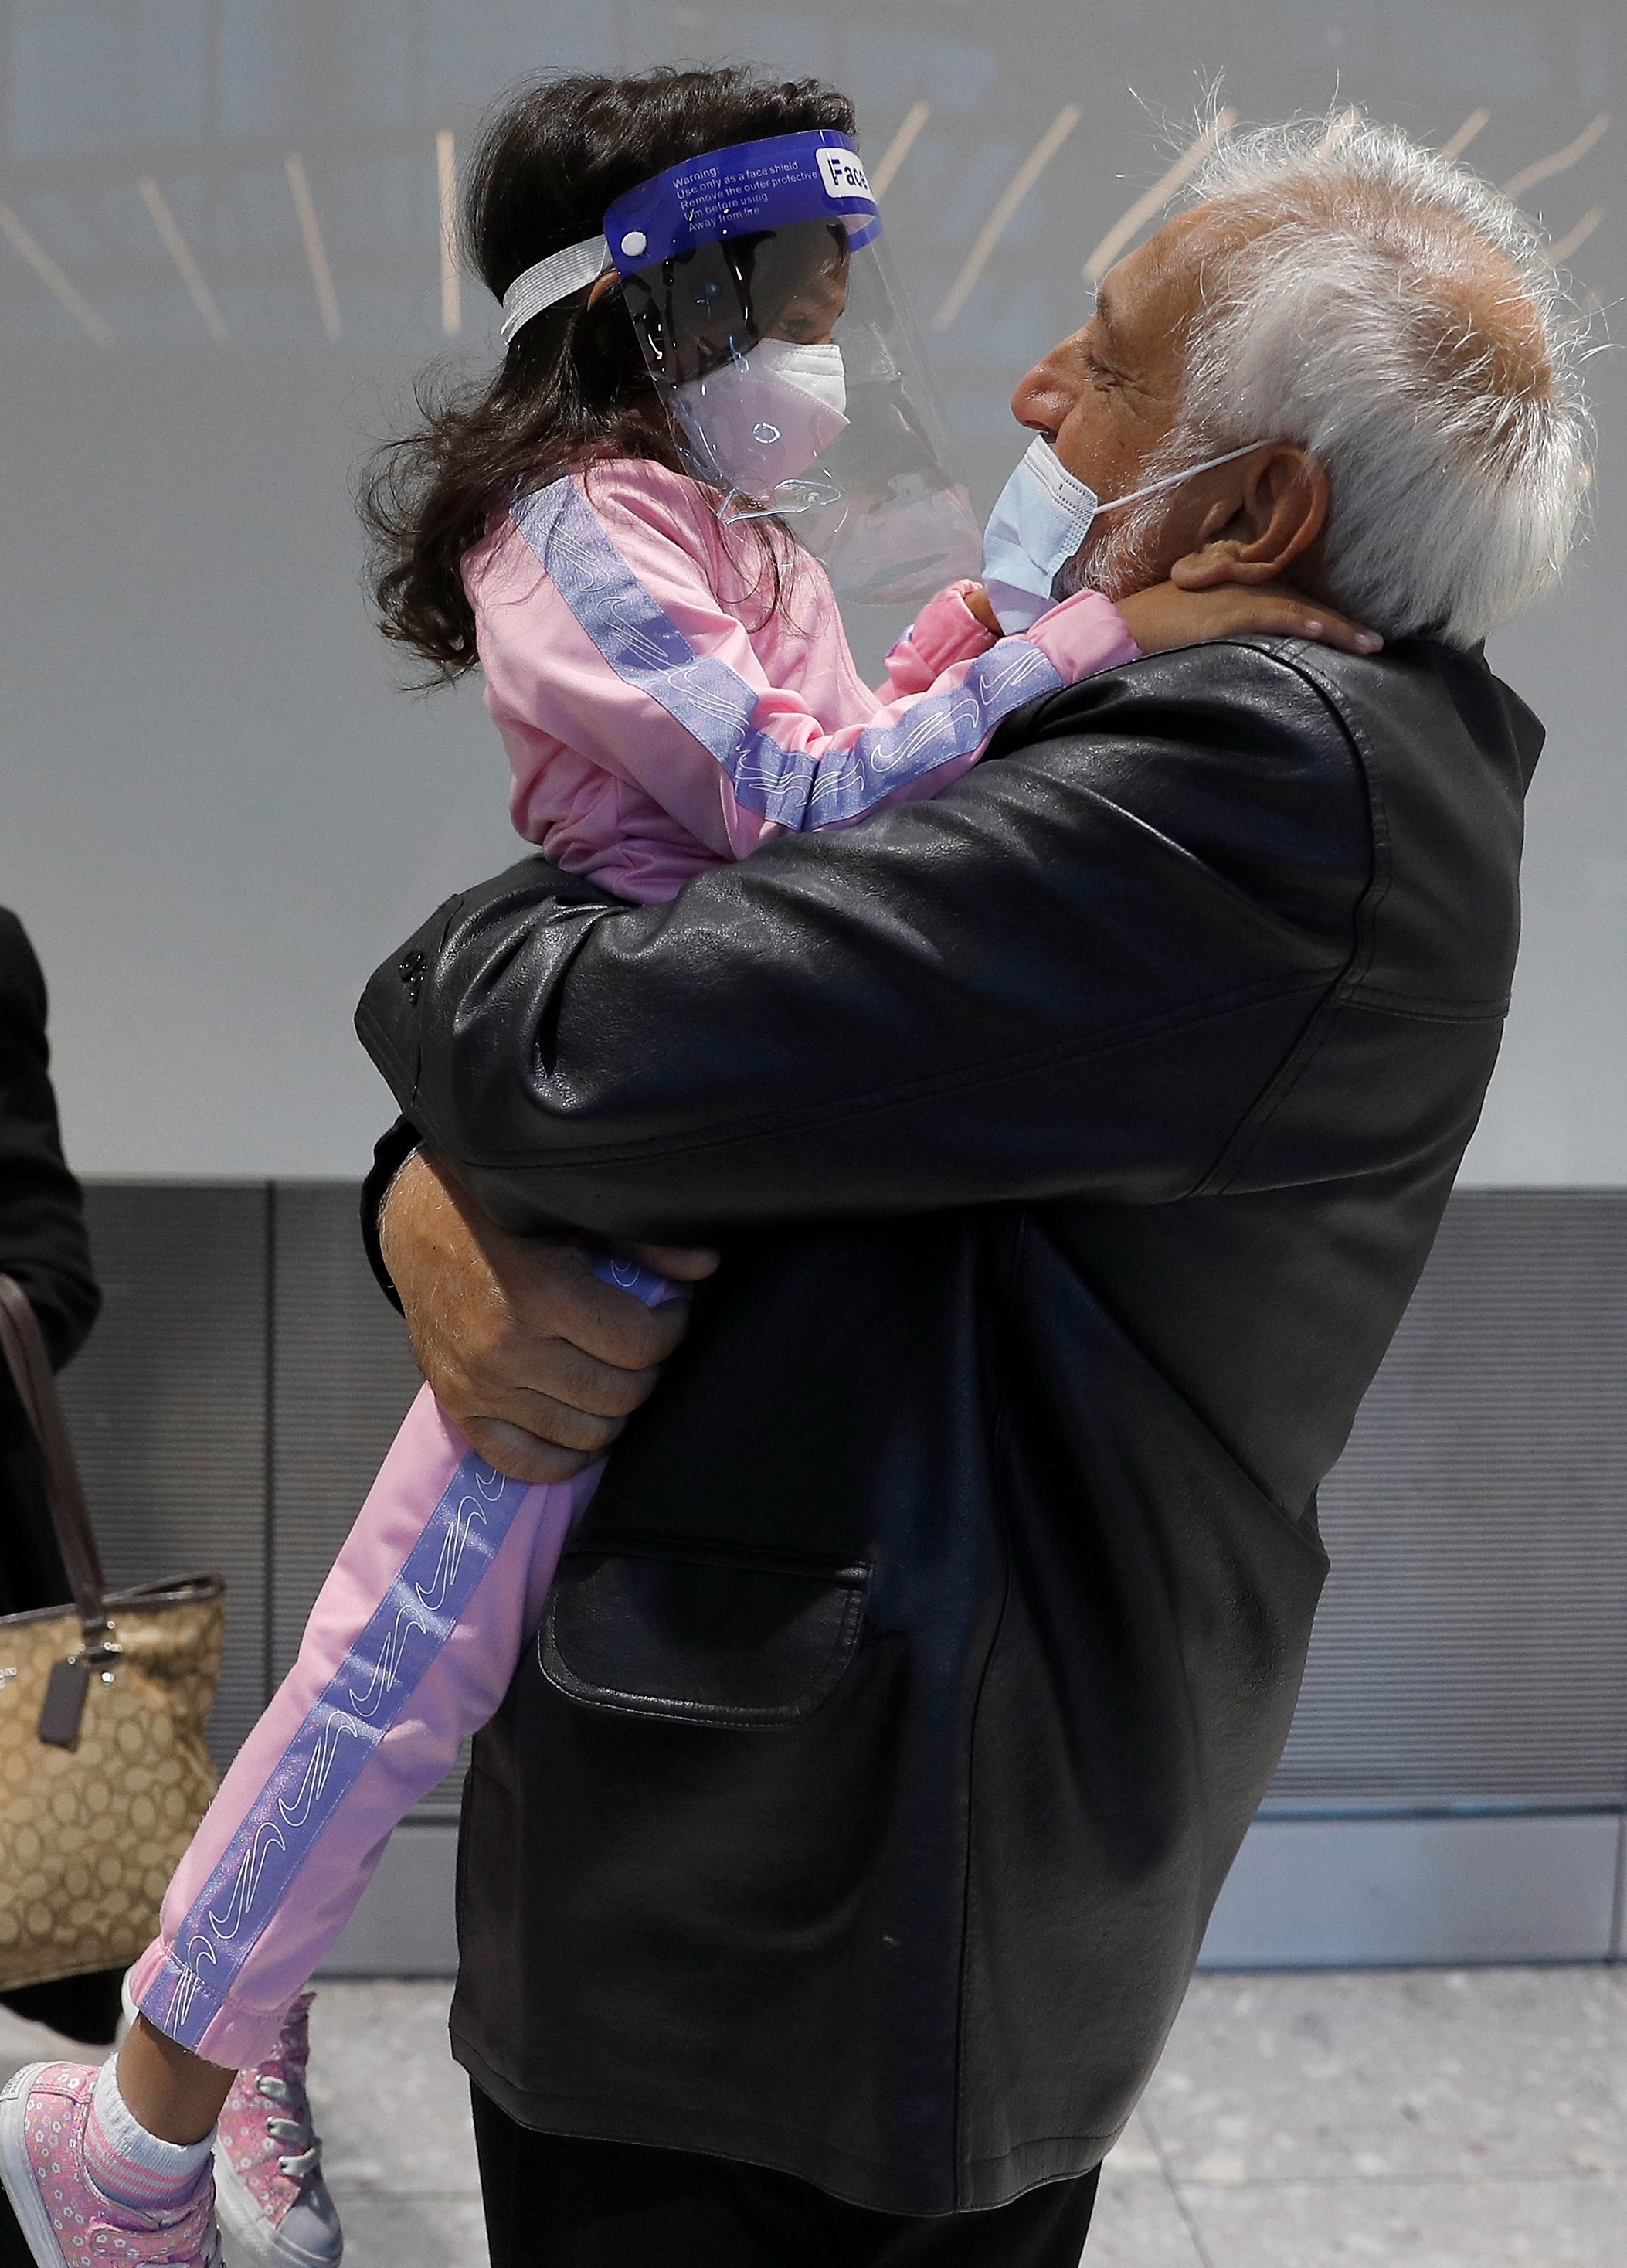 A man embraces his granddaughter after she arrives with family from Charlotte in the U.S., at the international arrivals area of Terminal 5 in London's Heathrow Airport, Britain, Aug. 2, 2021. (Reuters Photo)